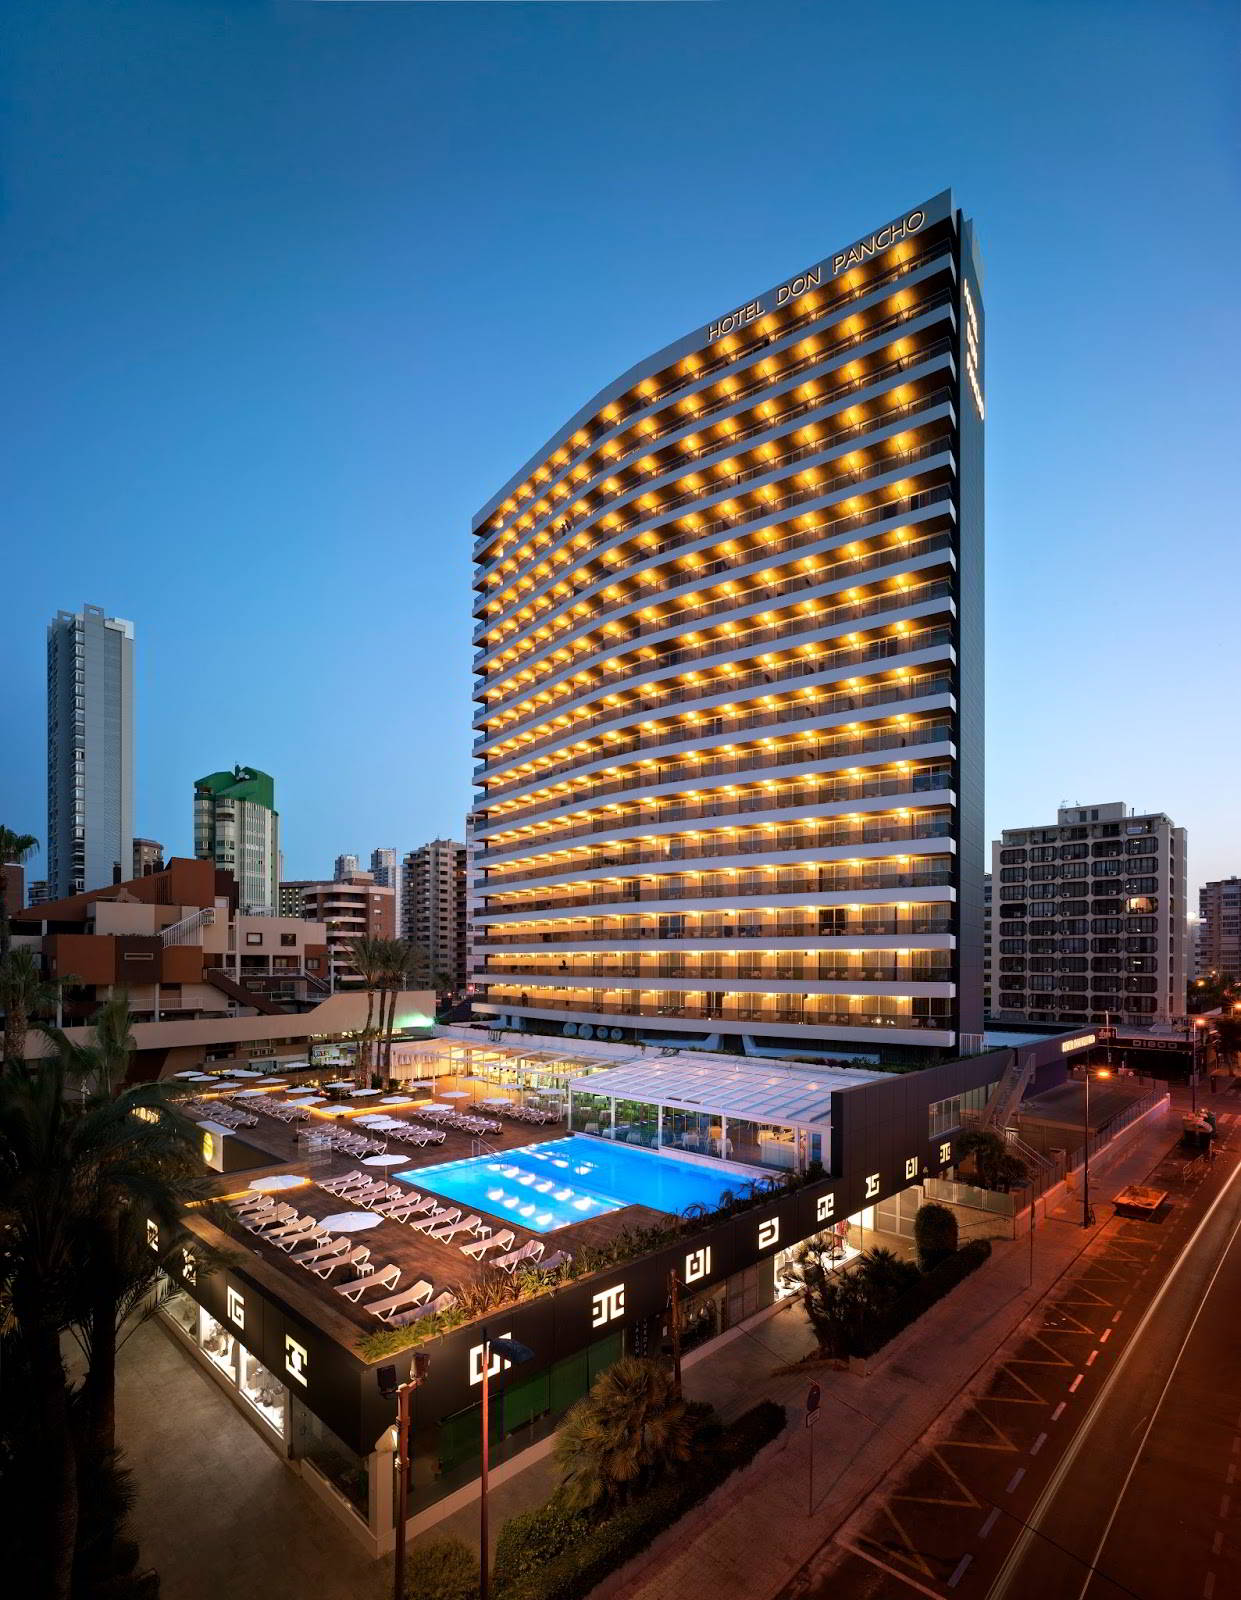 Hotel Don Pancho in Benidorm